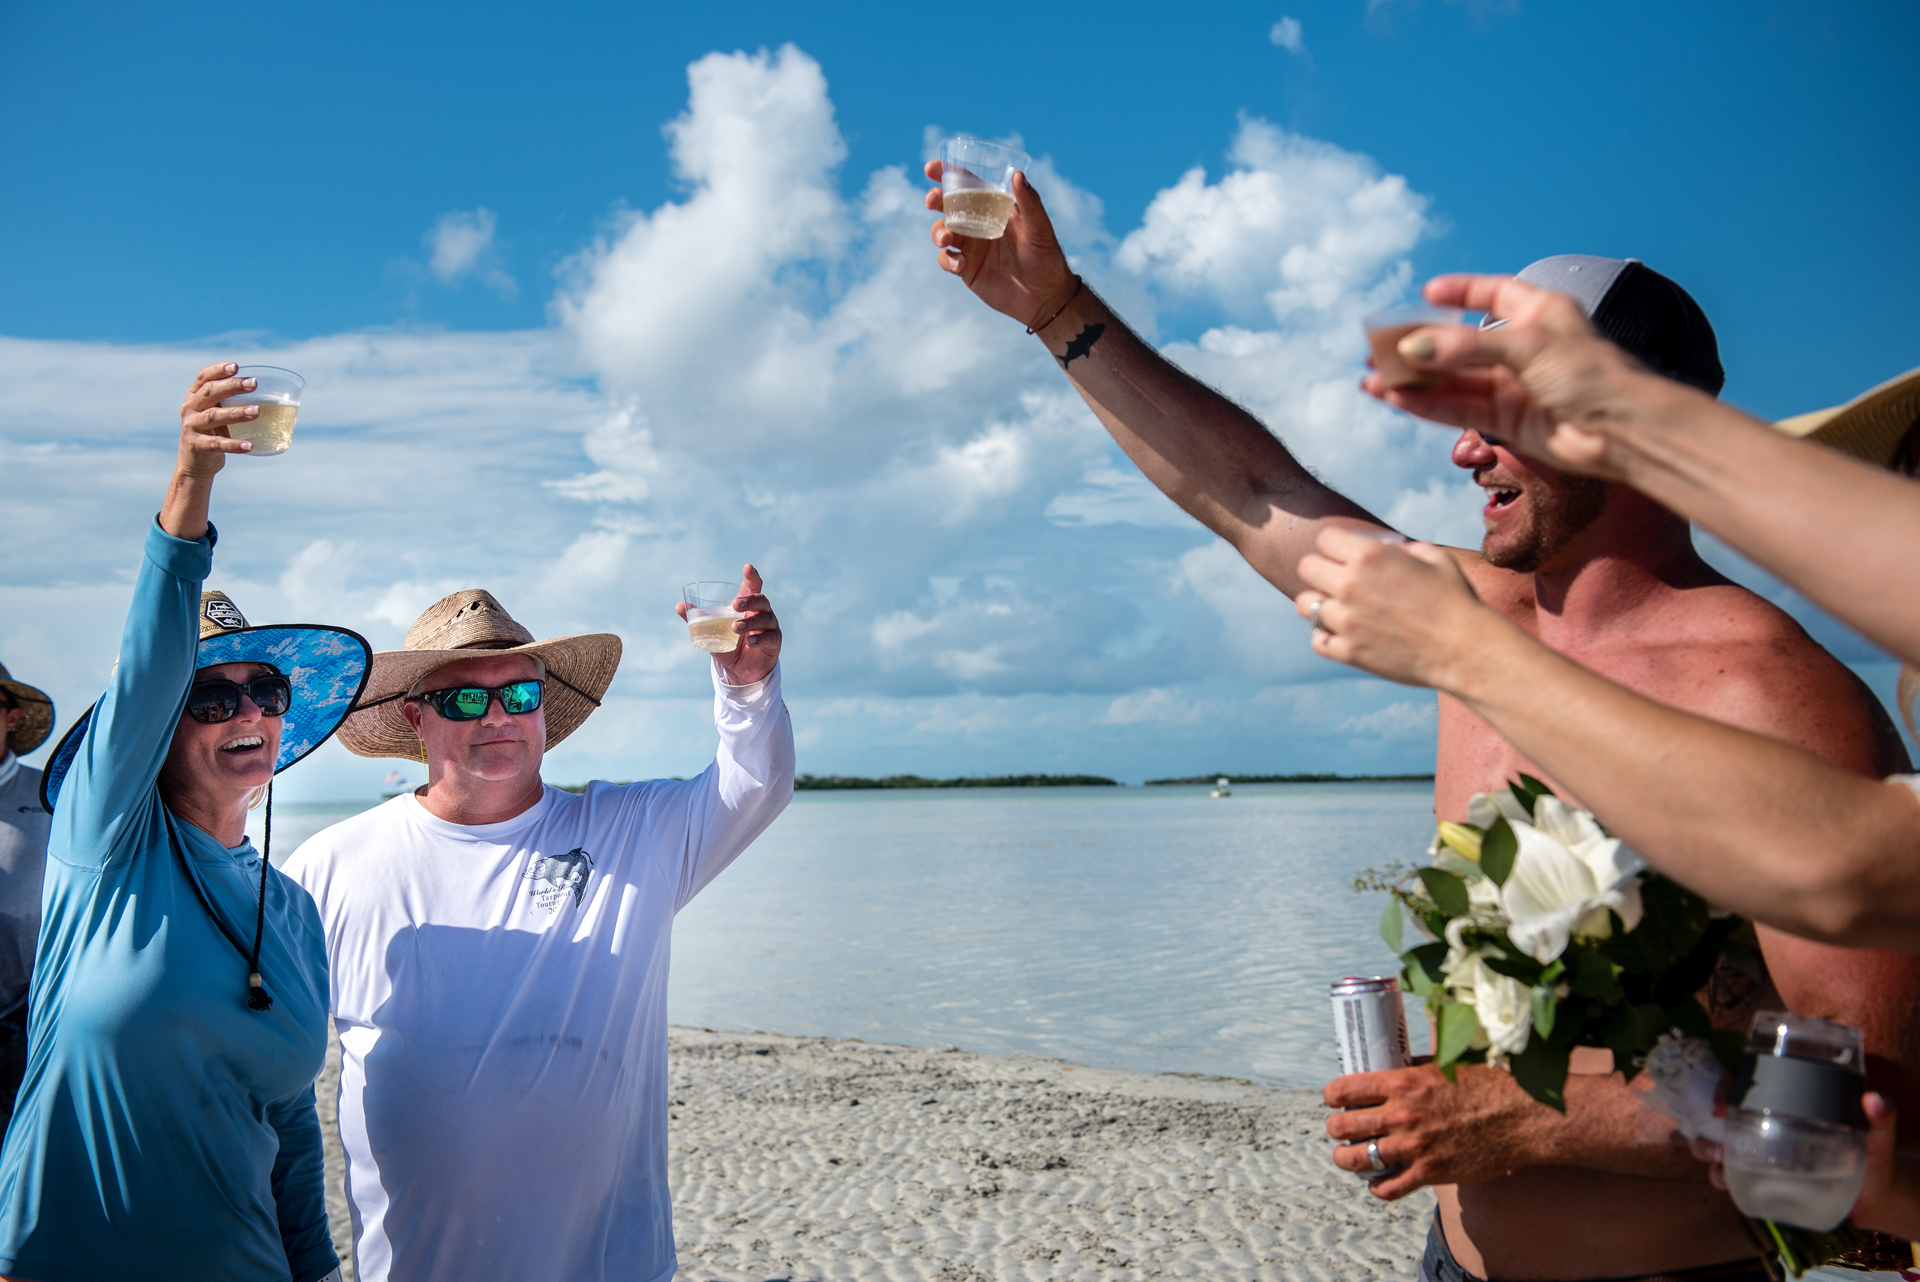 Elopement Photographer - FL Keys | The sandbar made the perfect location for this celebration